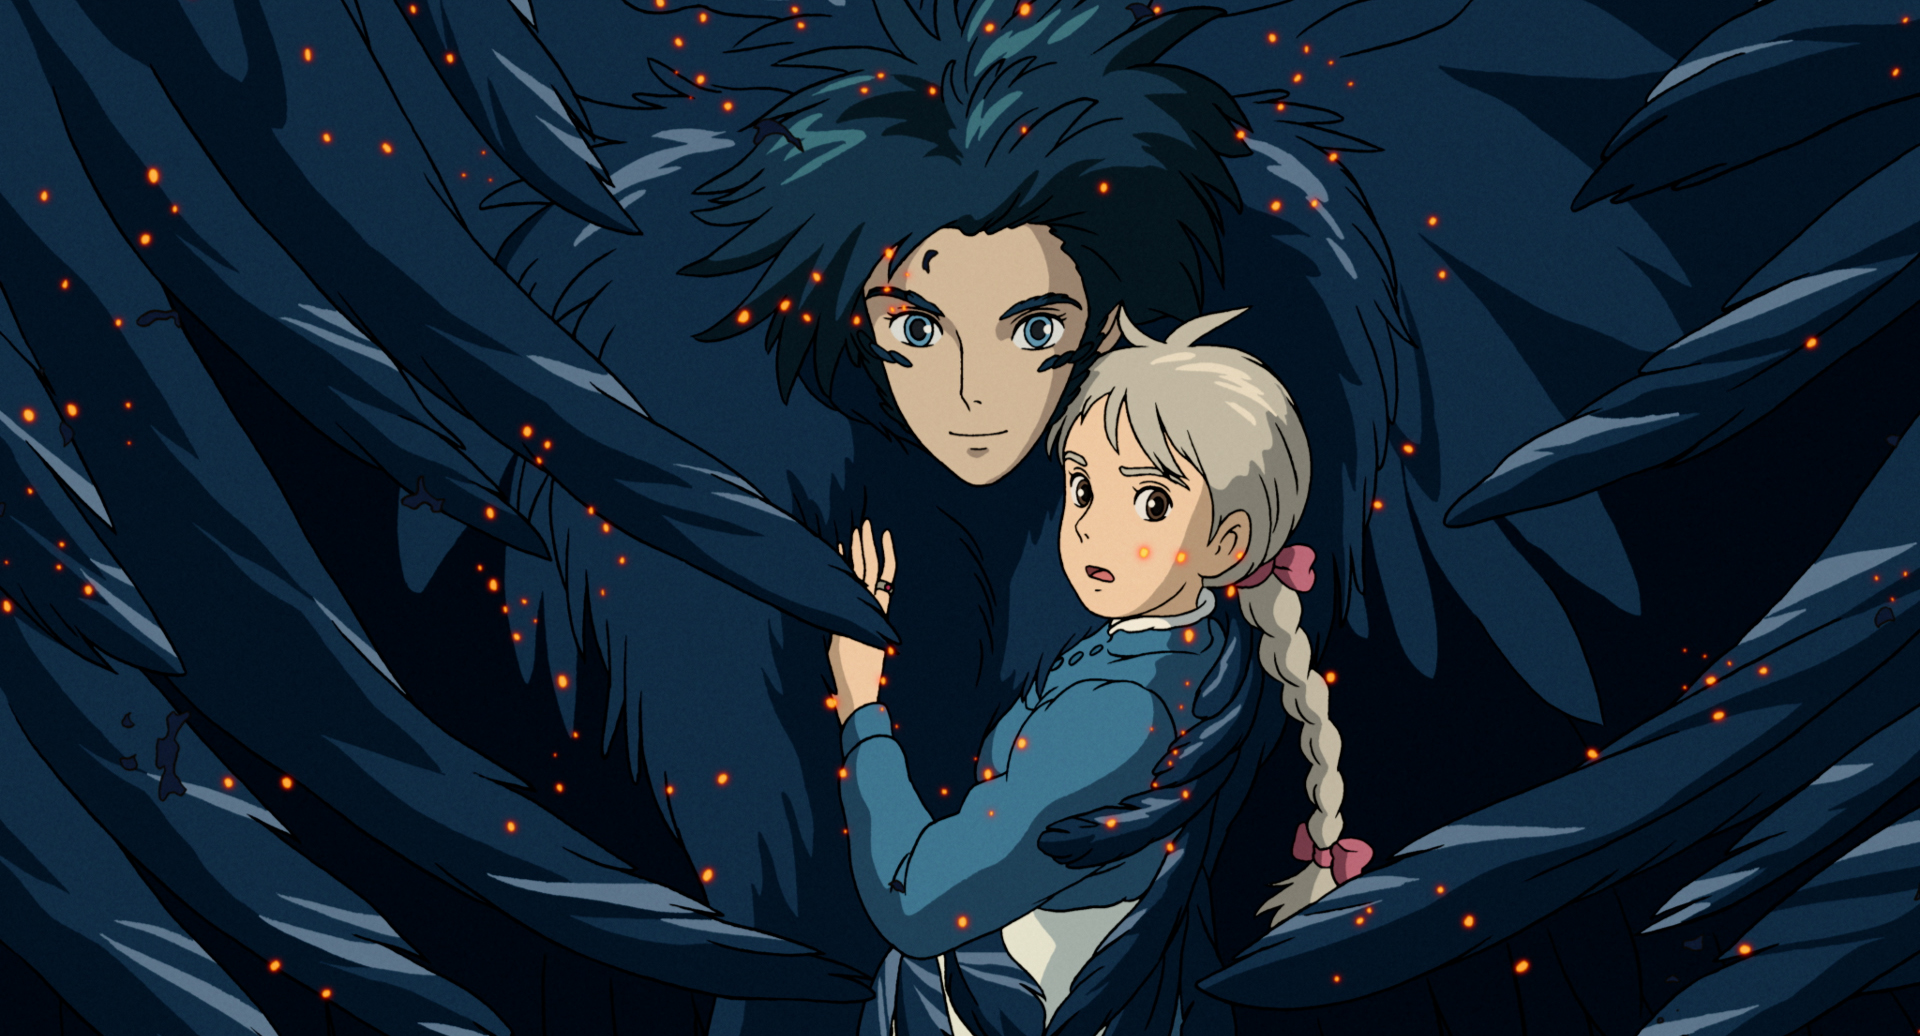 howl in his monstrous bird form, holding sophie